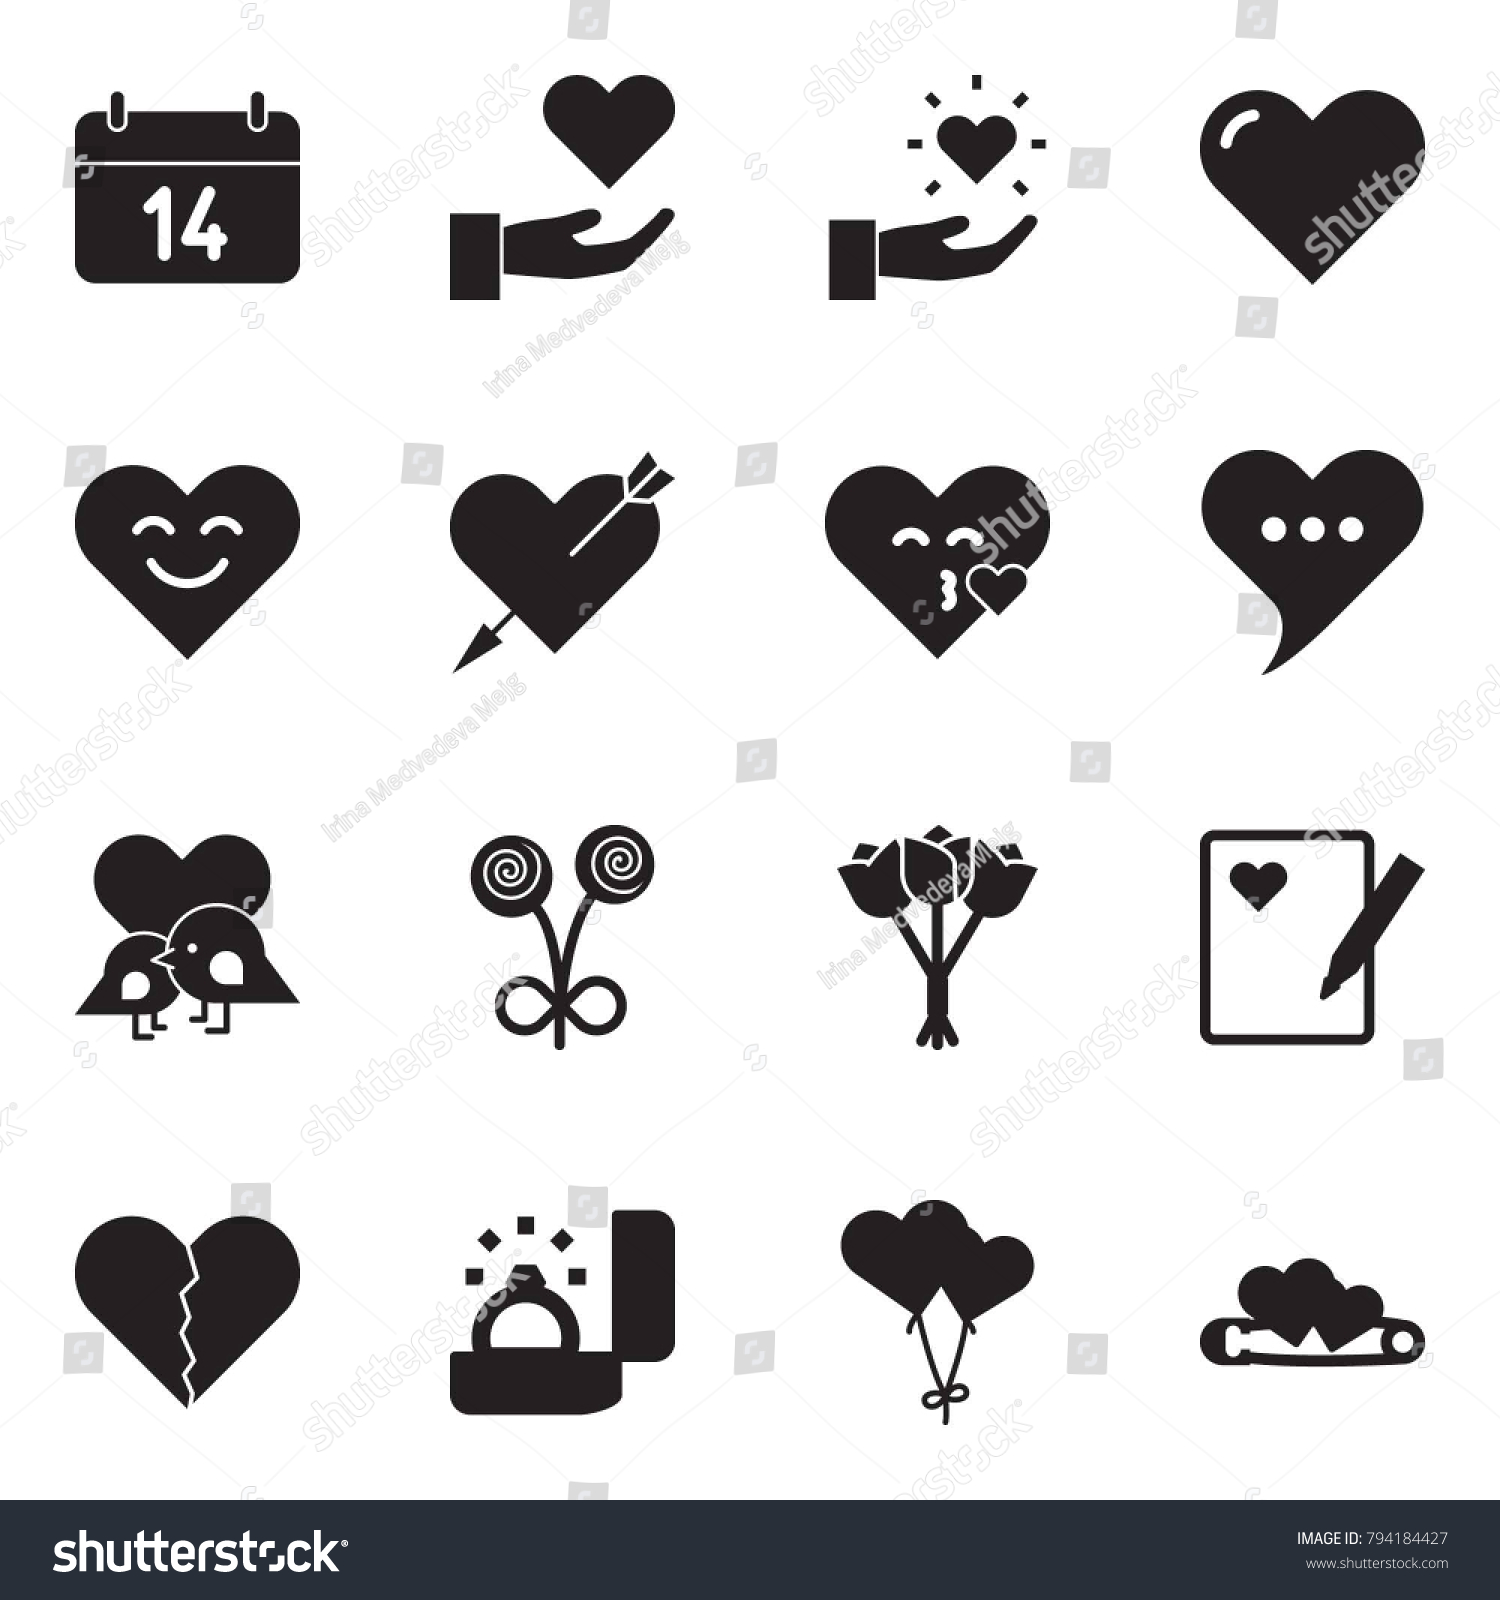 Kiss message symbol gallery symbol and sign ideas solid black vector icon set 14 stock vector 794184427 shutterstock solid black vector icon set 14 biocorpaavc